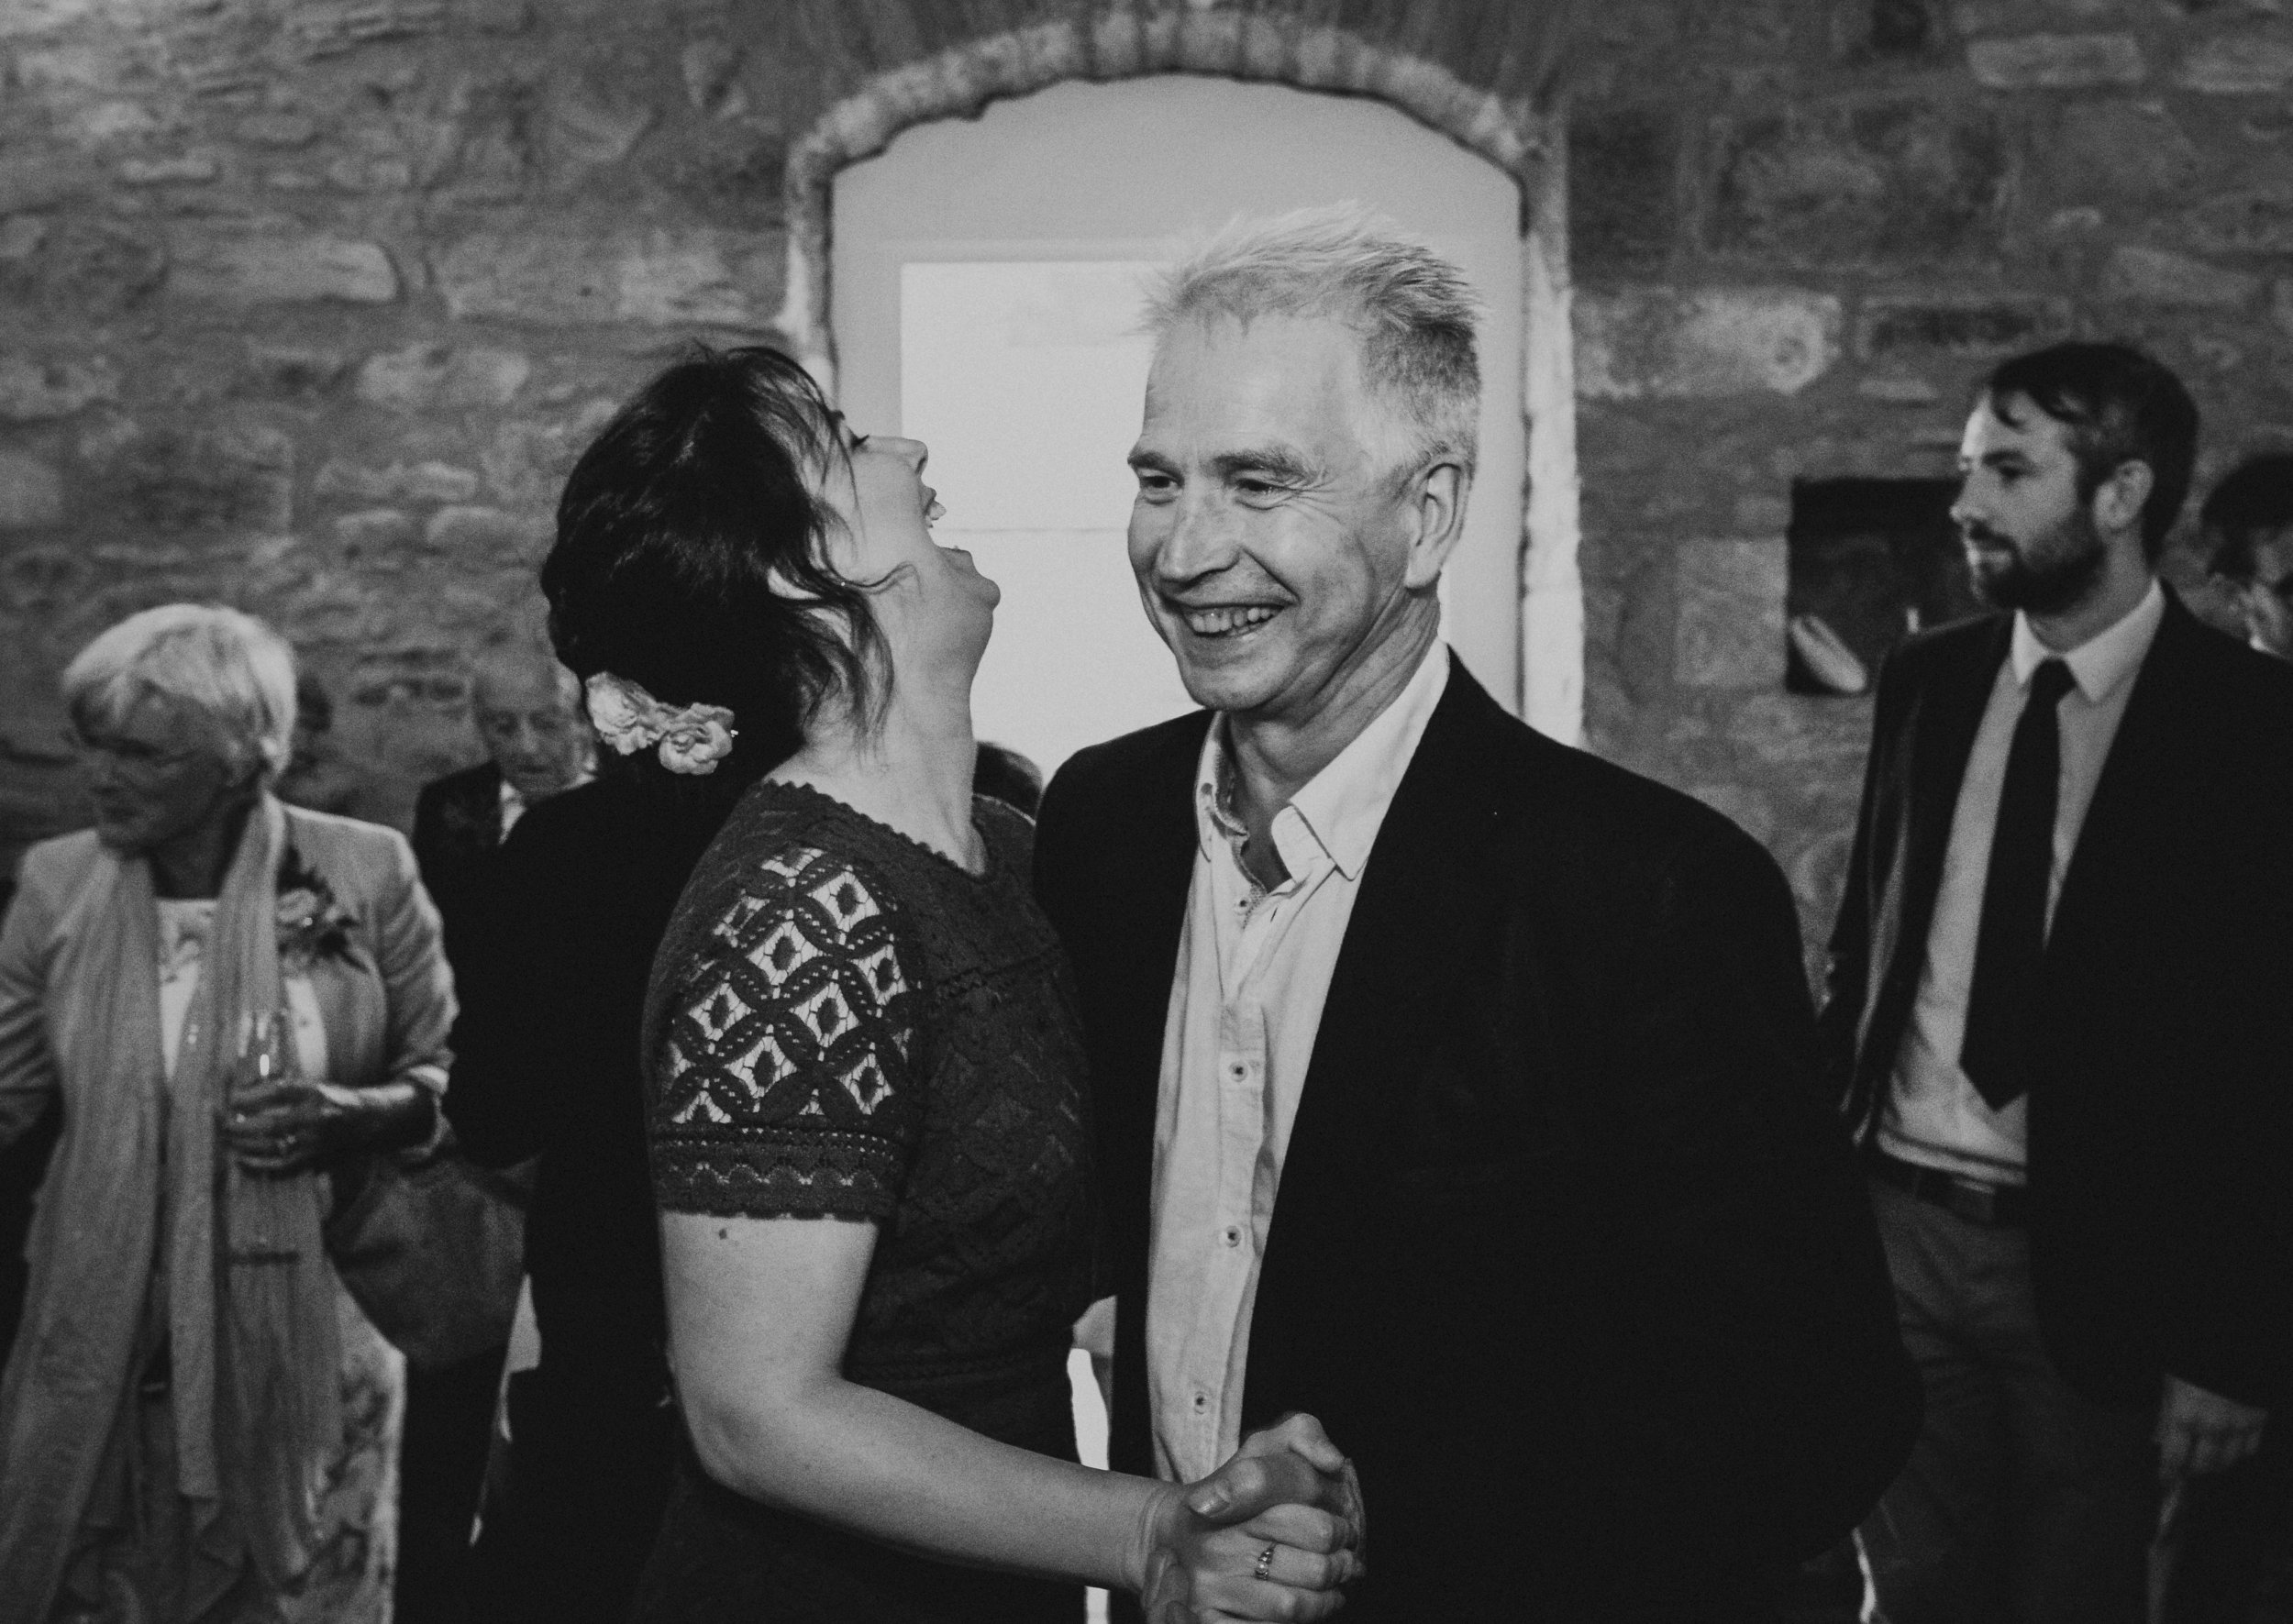 PJ_PHILLIPS_PHOTOGRAPHY_EDINBURGH_WEDDERBURN_BARNS_WEDDING_EDINBURGH_WEDDING_PHOTOGRAPHER_140.jpg